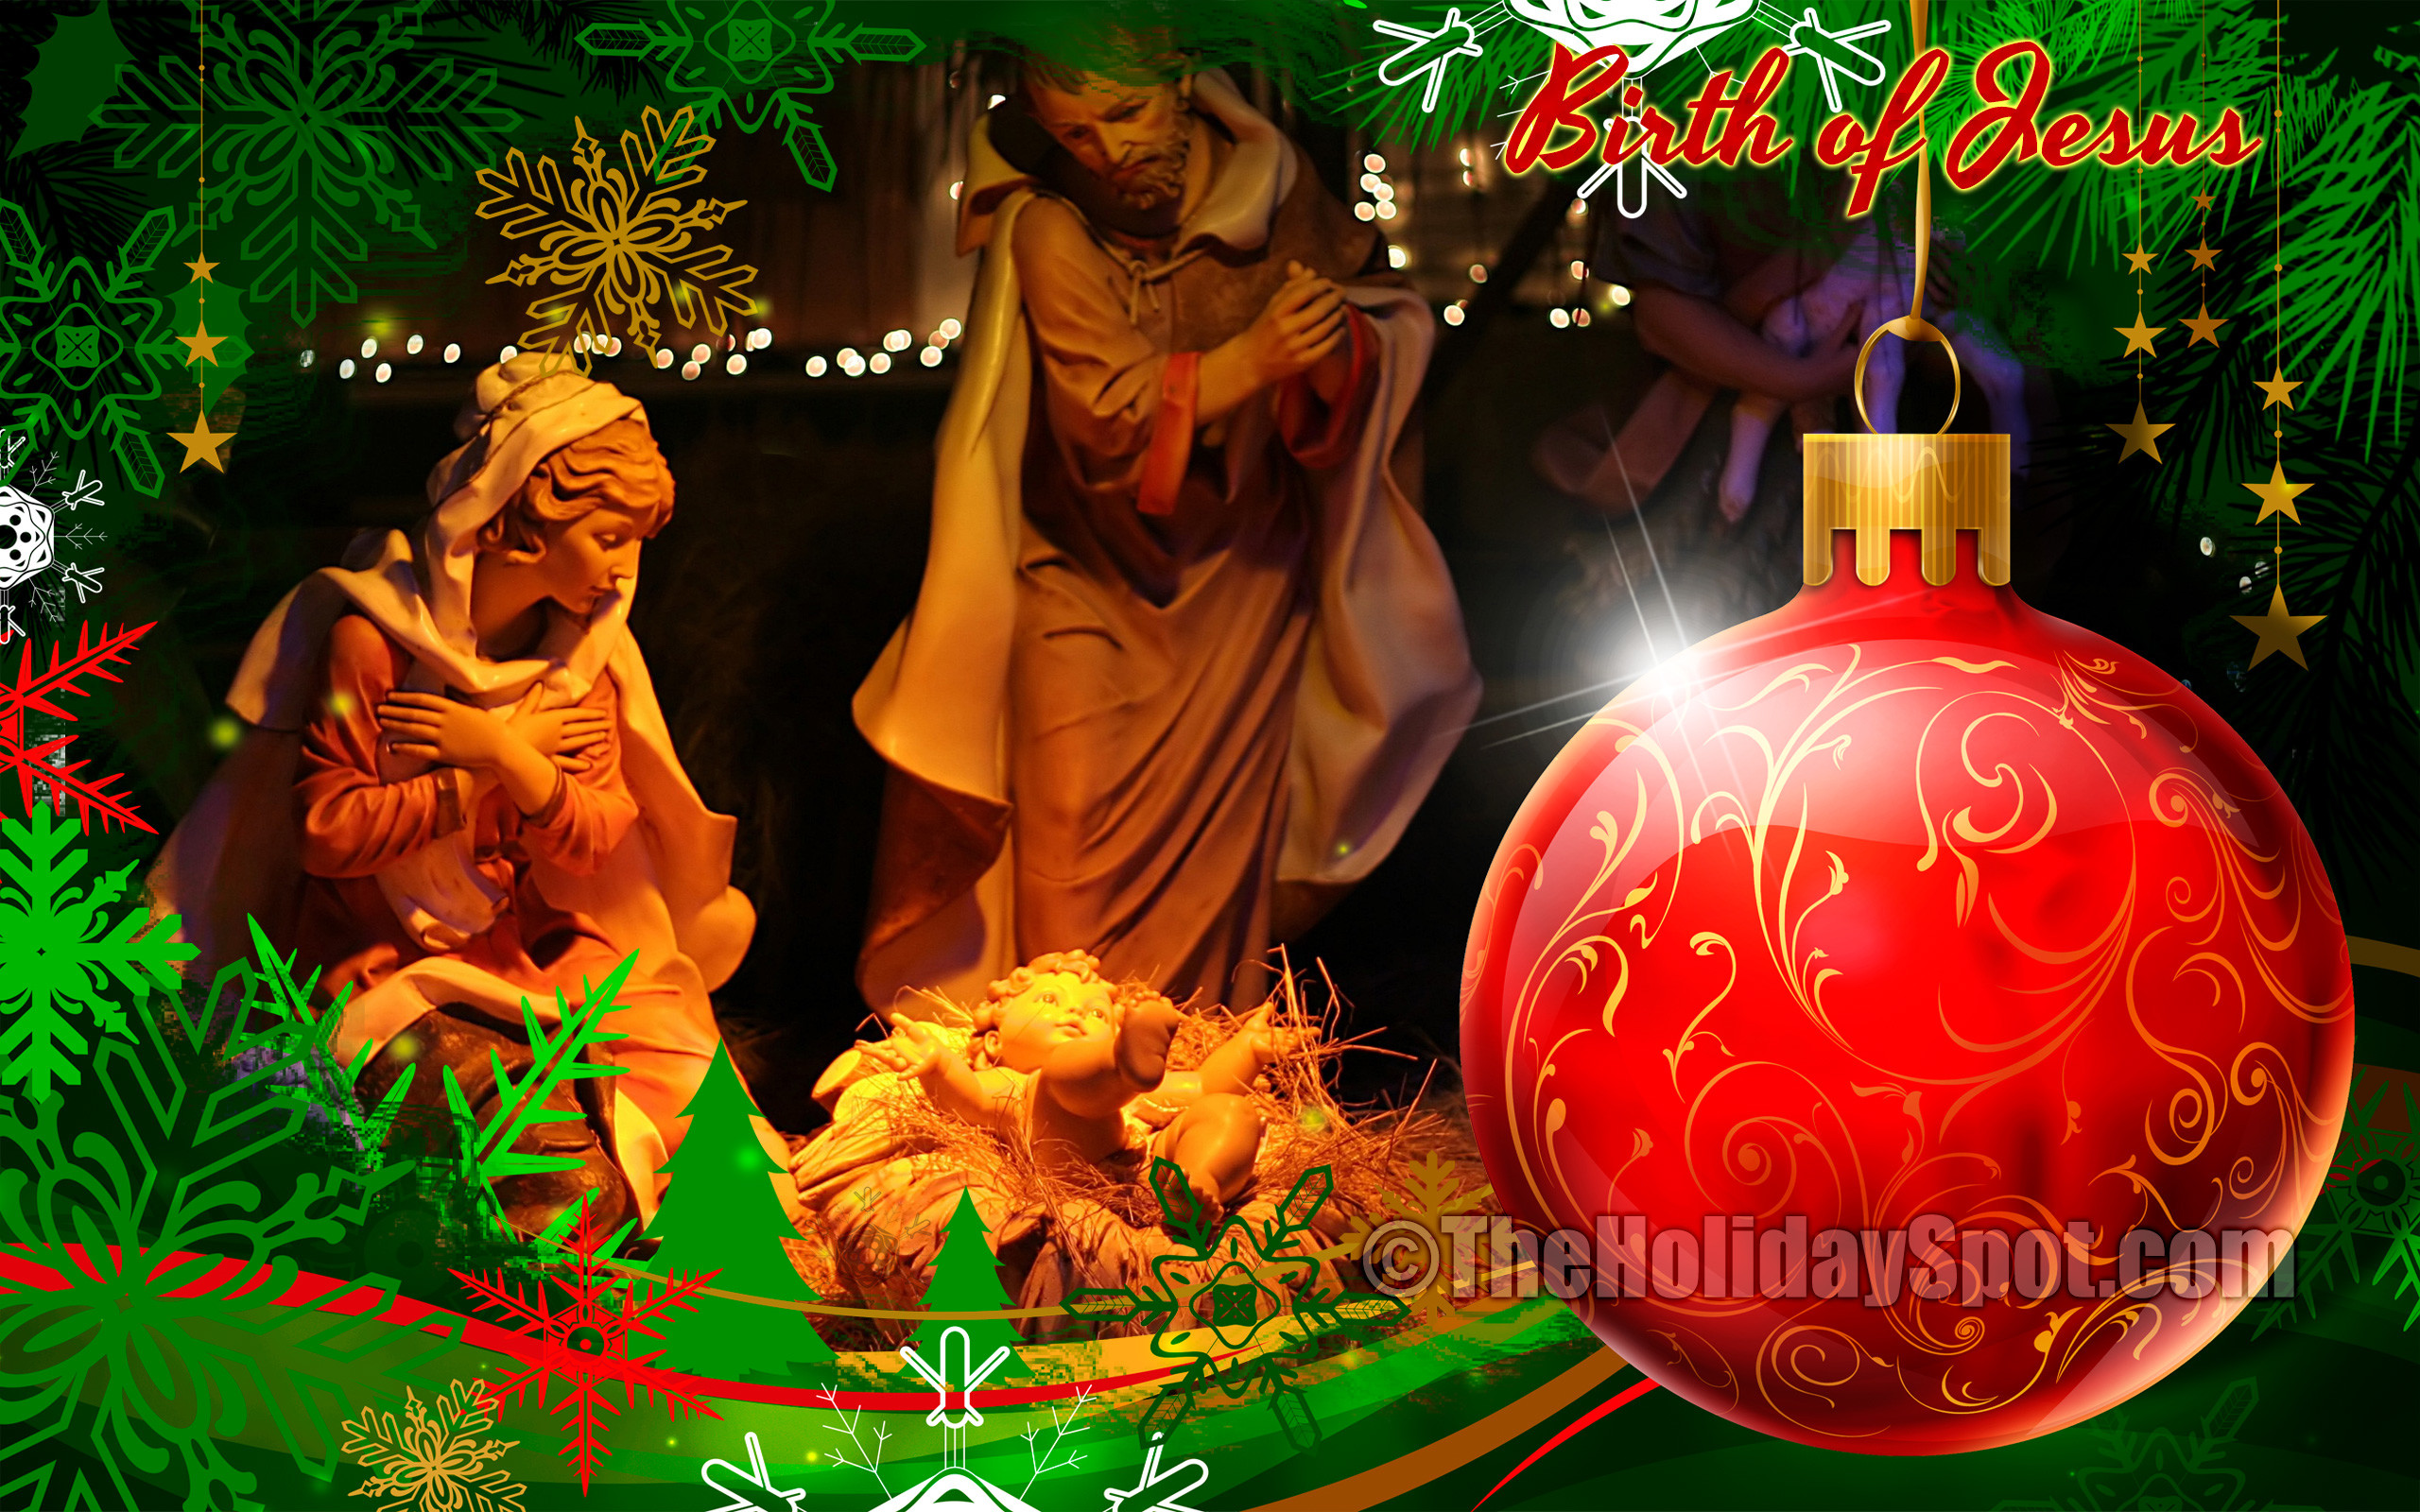 Christmas Jesus Birth Images.Jesus Birth Wallpaper 55 Images